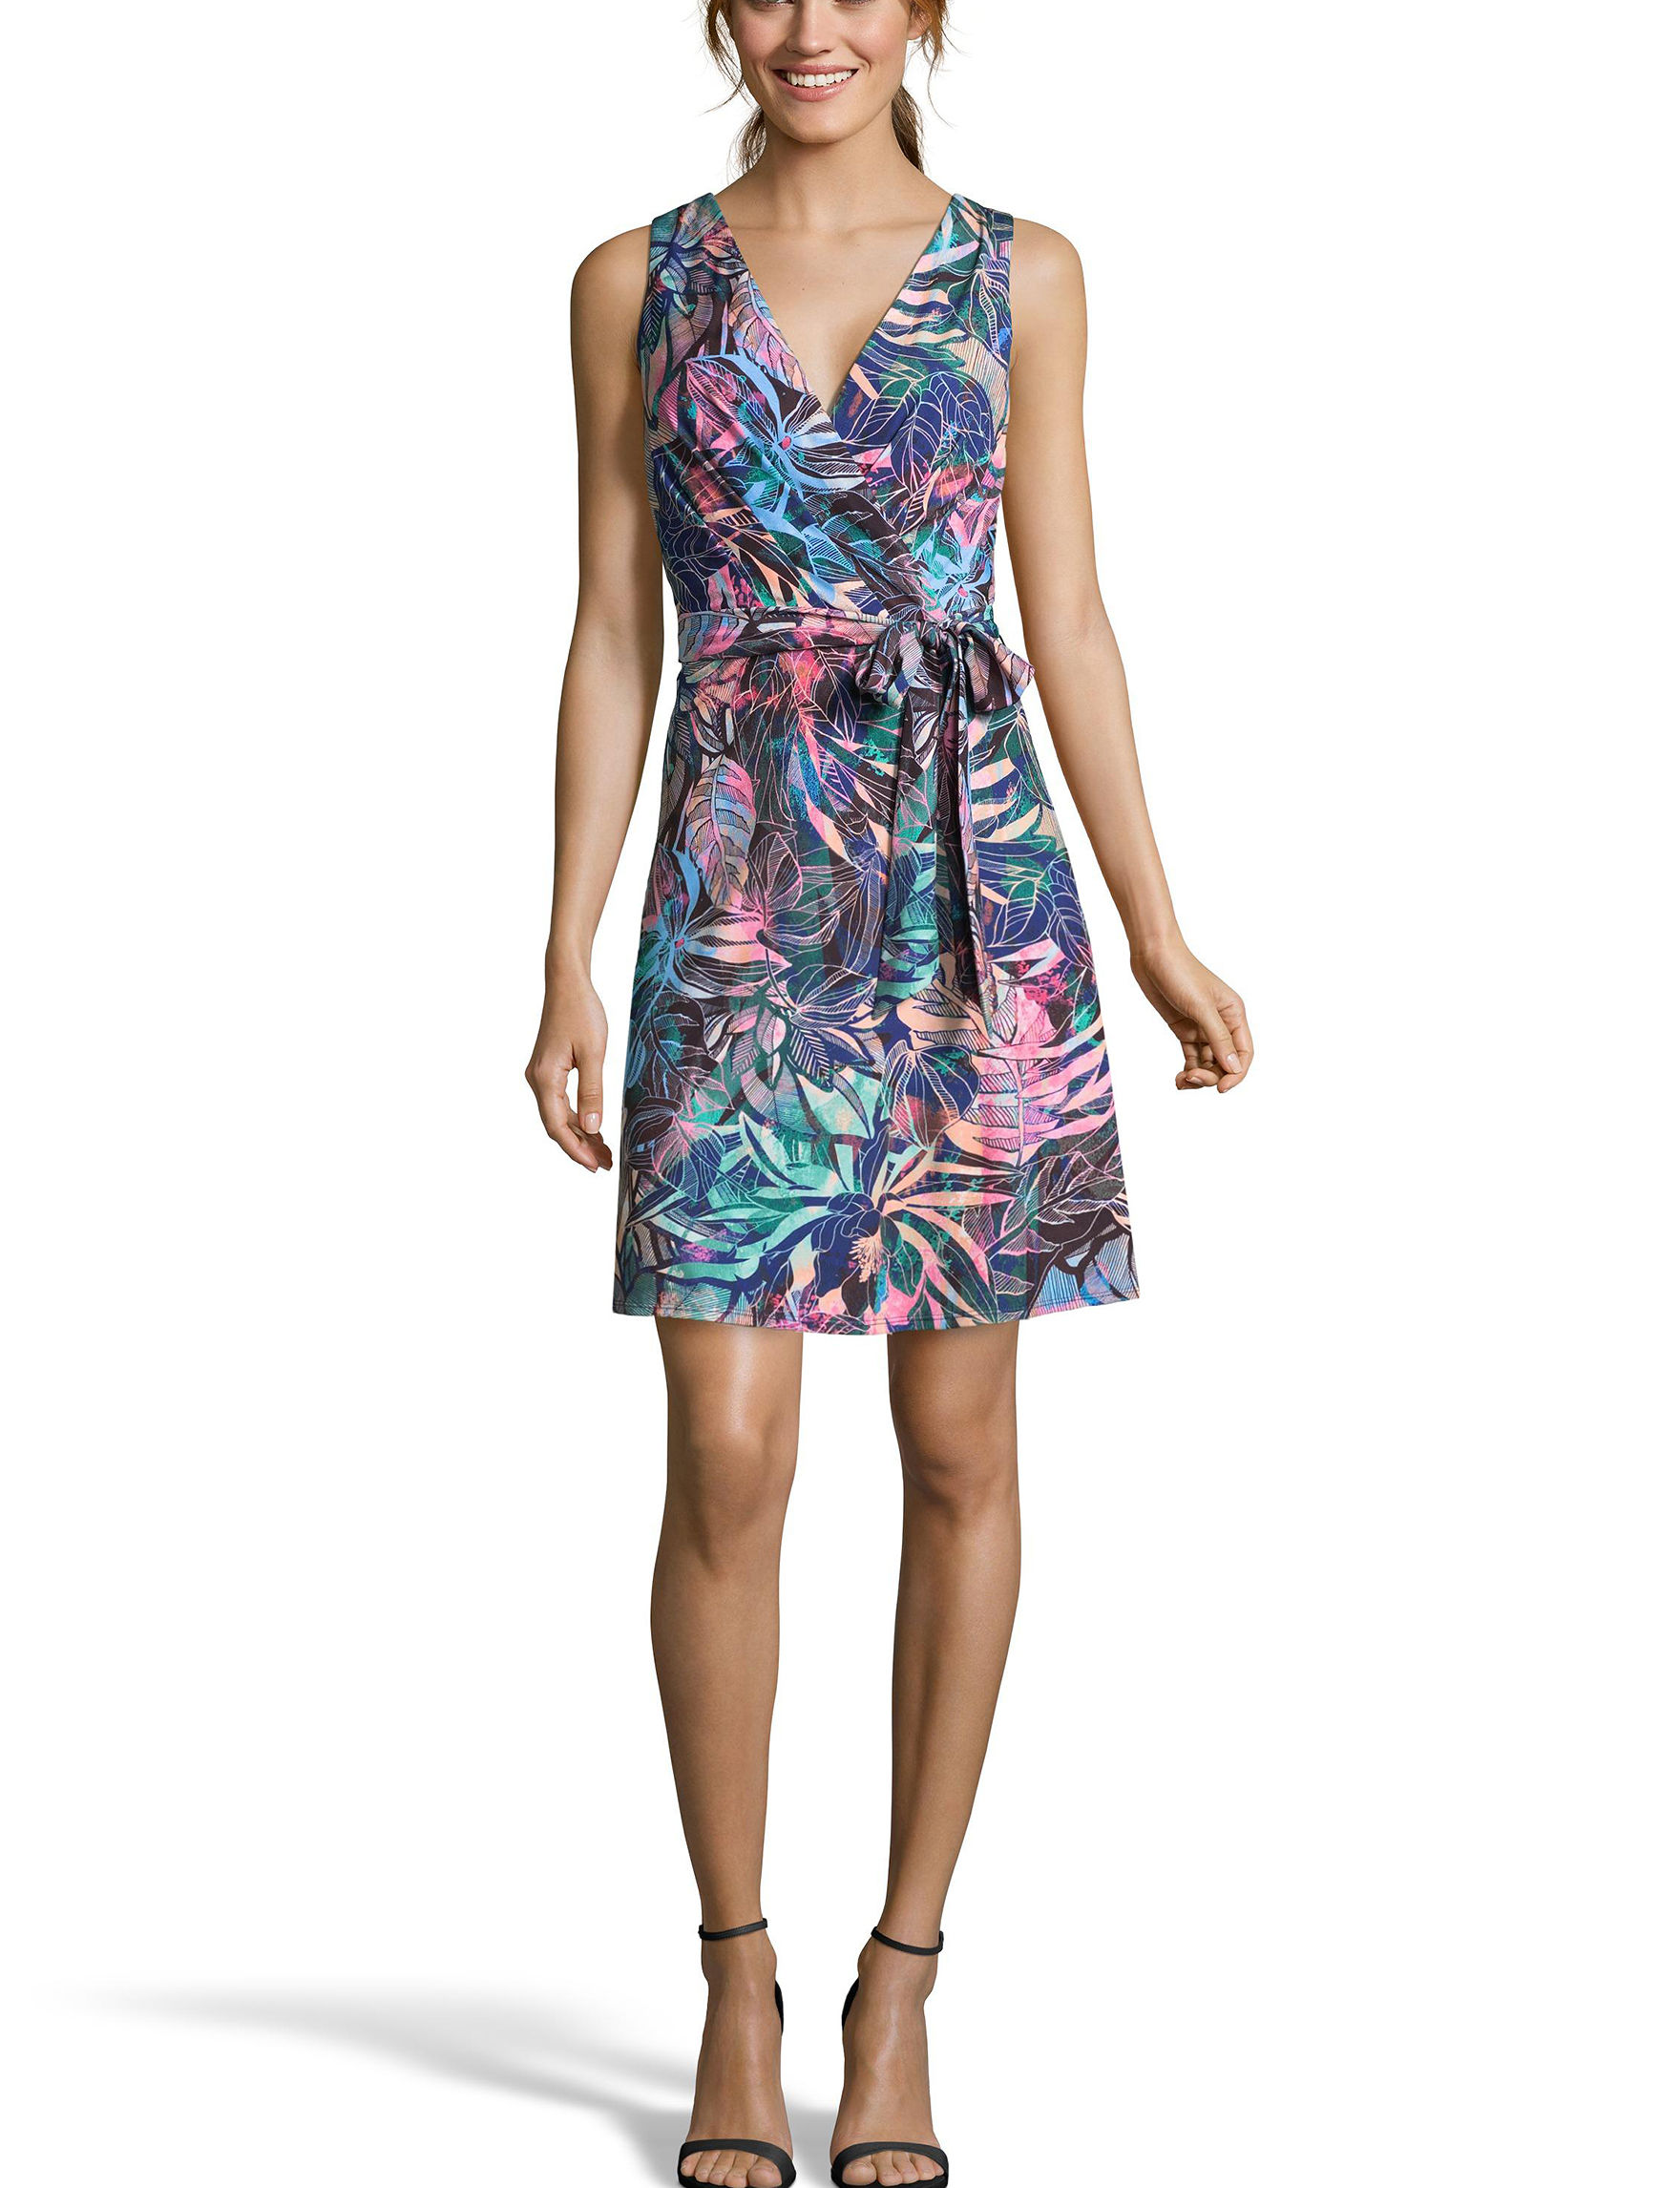 Nicole Miller Navy / Multi Everyday & Casual A-line Dresses